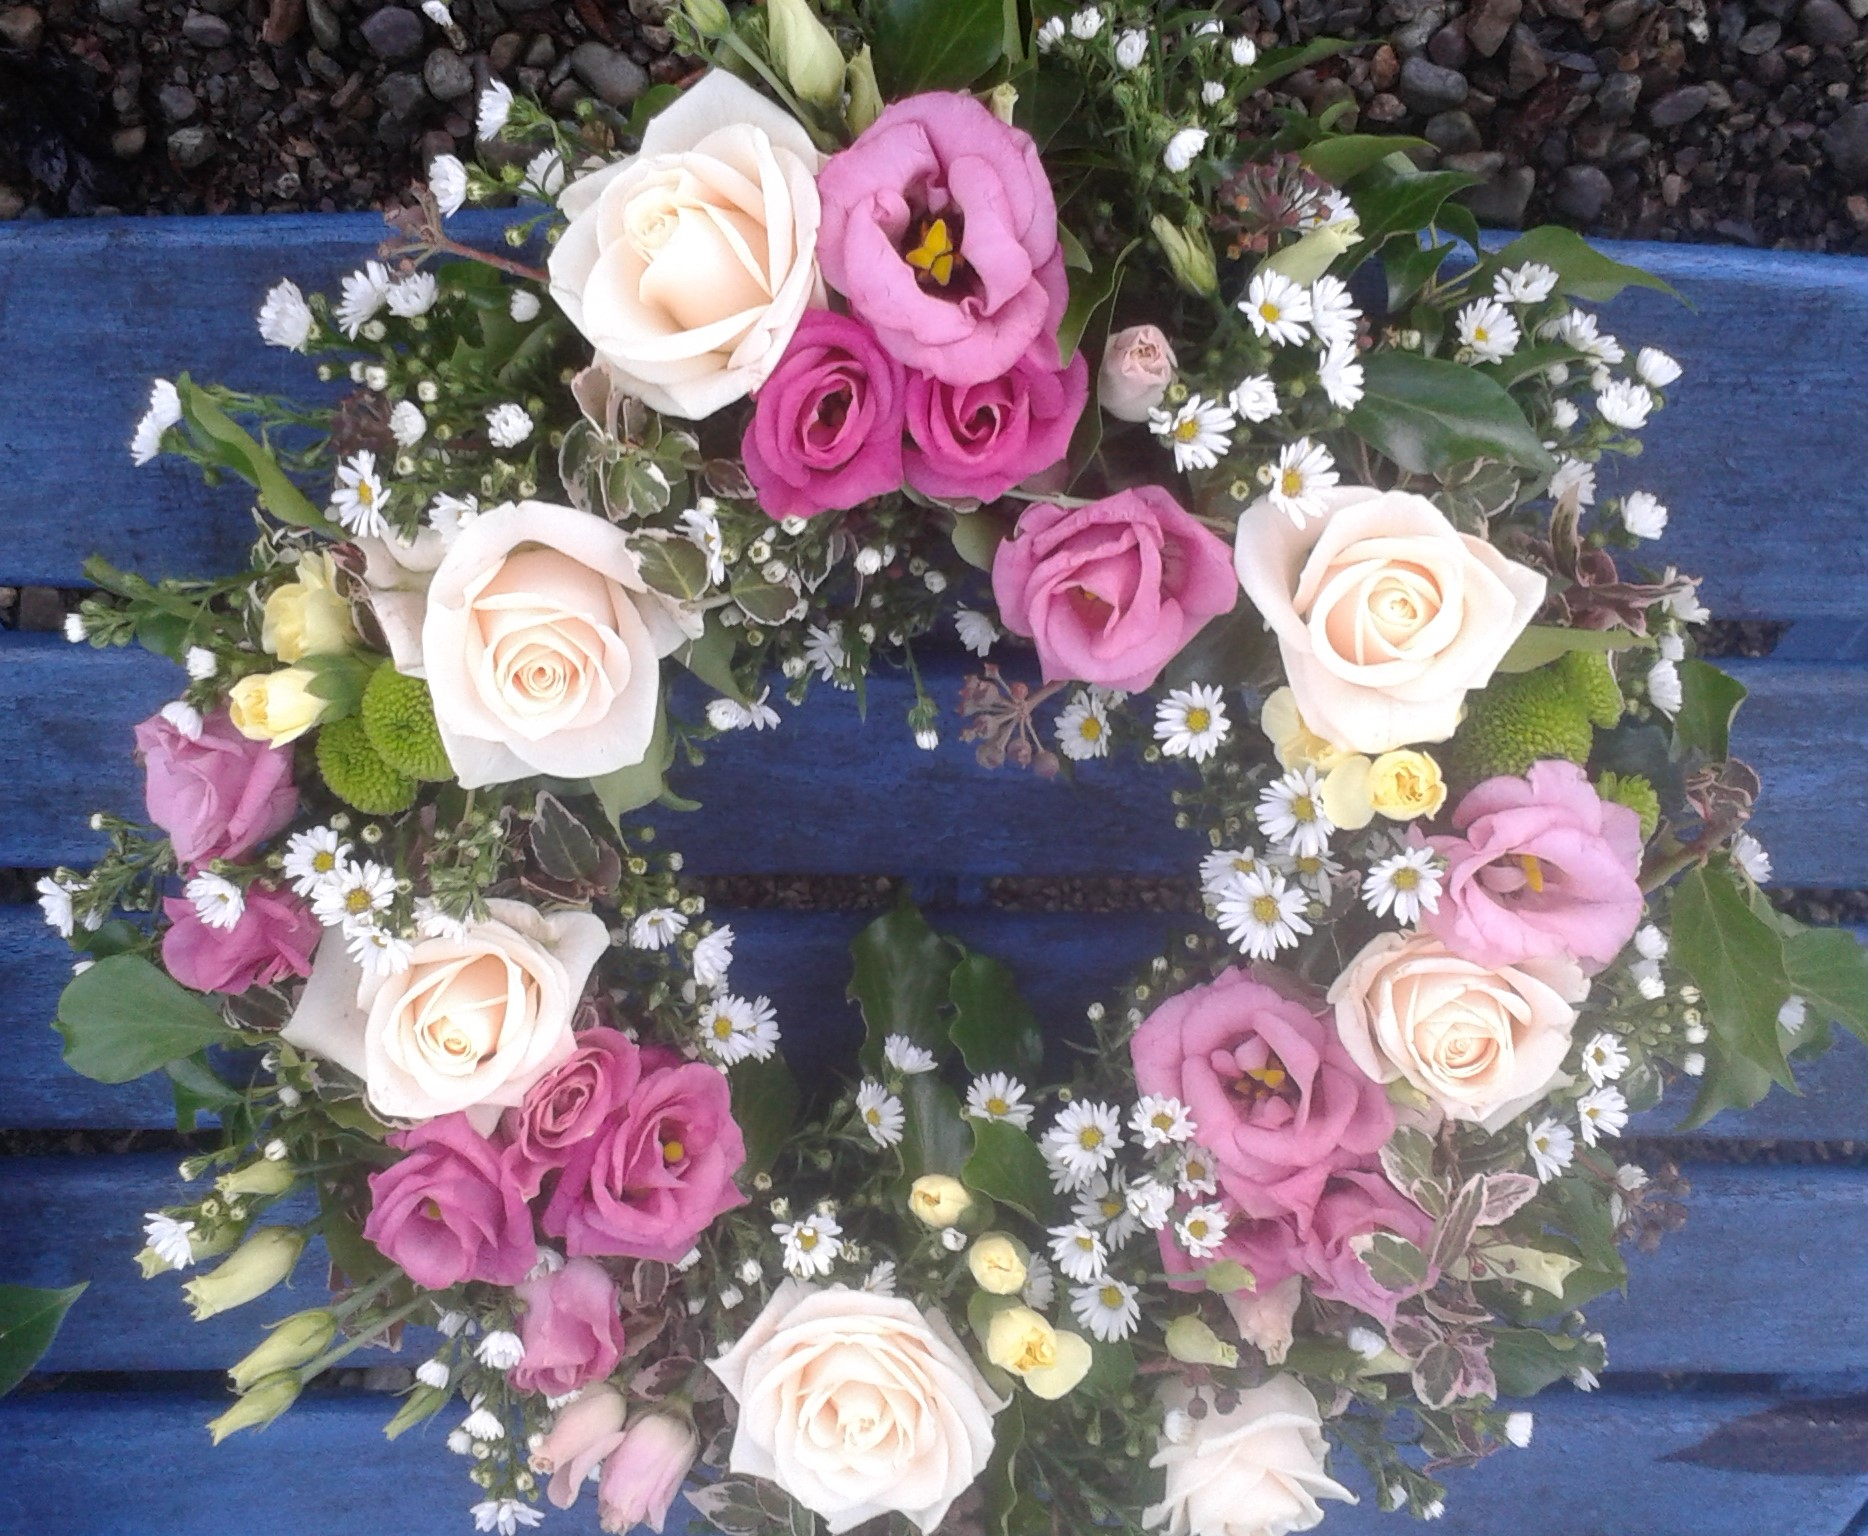 Funeral remembrance flowers the secret garden cork kerry pink rose daisy wreath izmirmasajfo